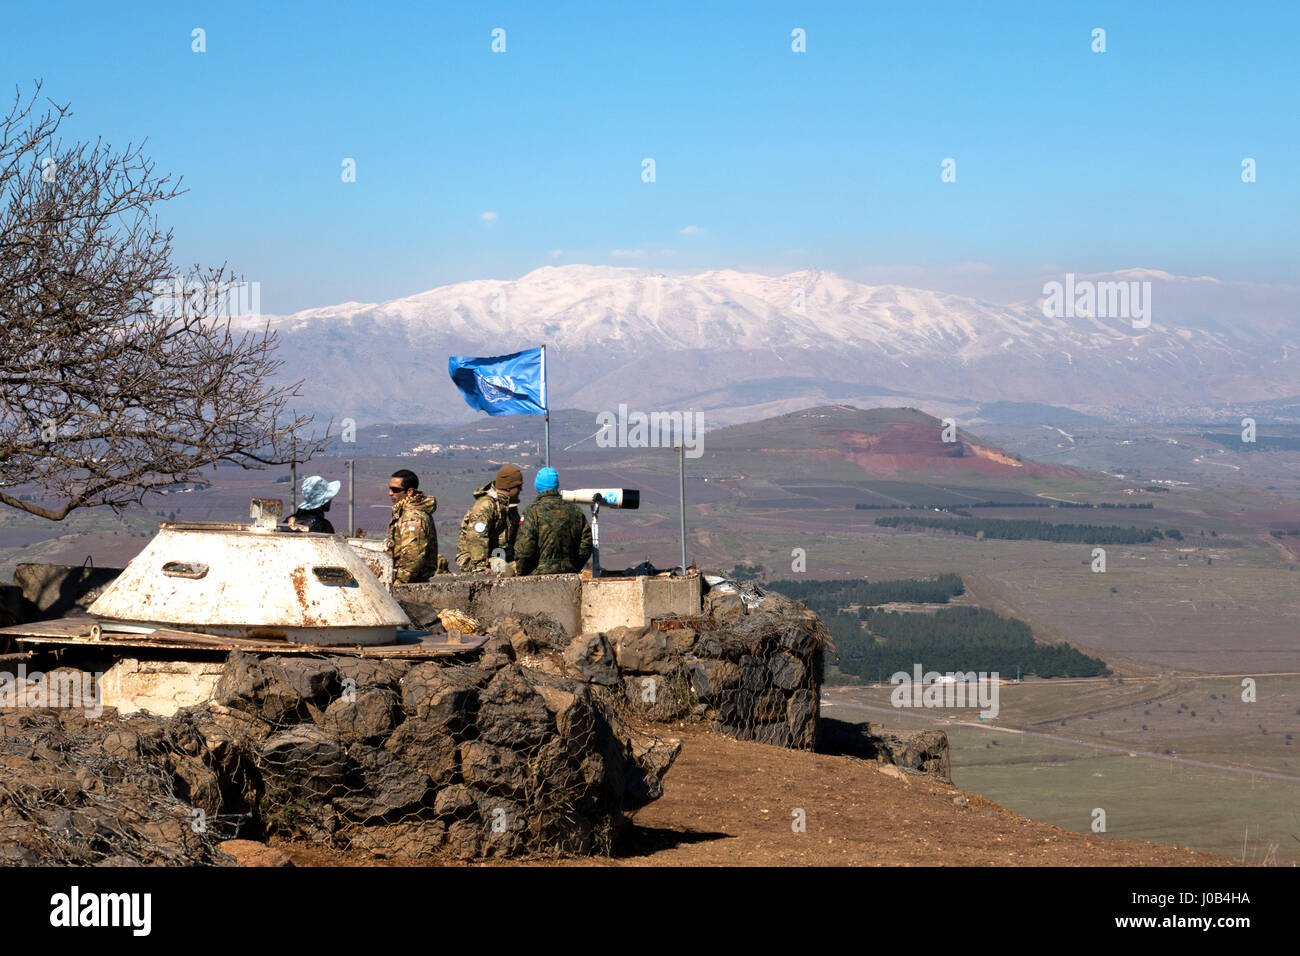 U.N peace keeping soldiers observing the Israel - Syria  border from the Israeli side. - Stock Image